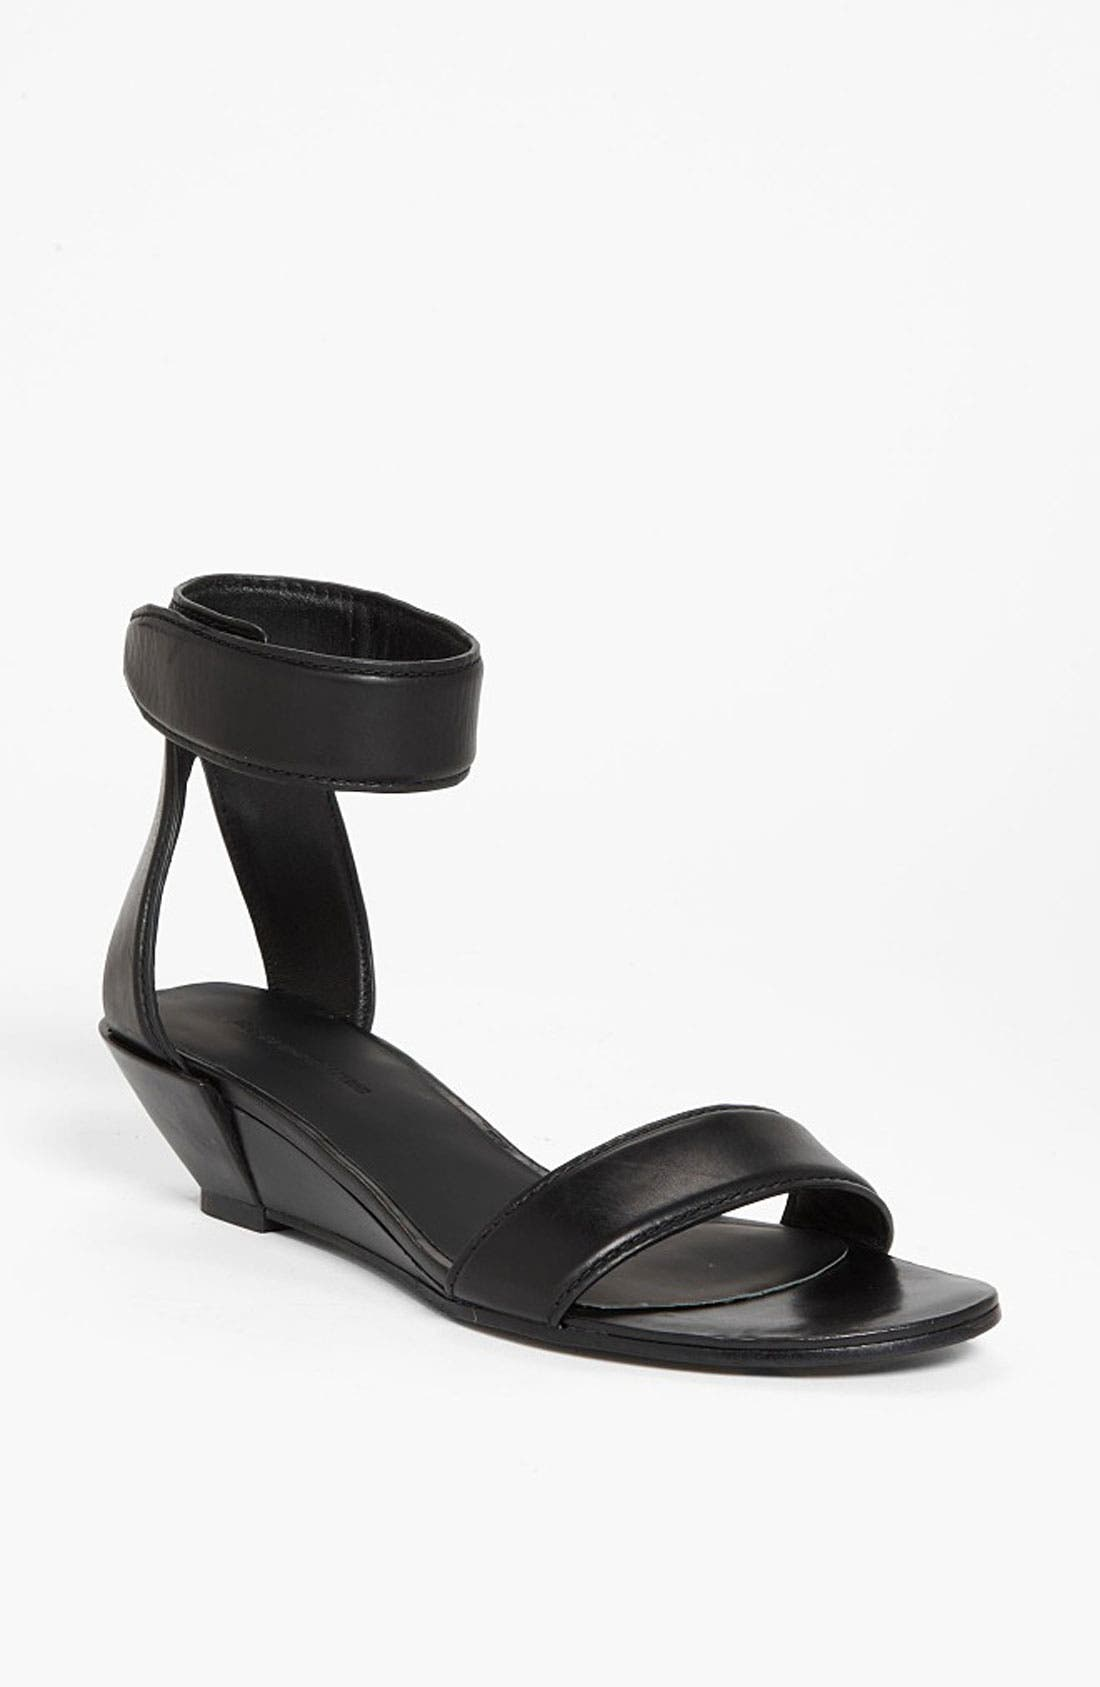 Alternate Image 1 Selected - Alexander Wang 'Vika' Demi Wedge Sandal